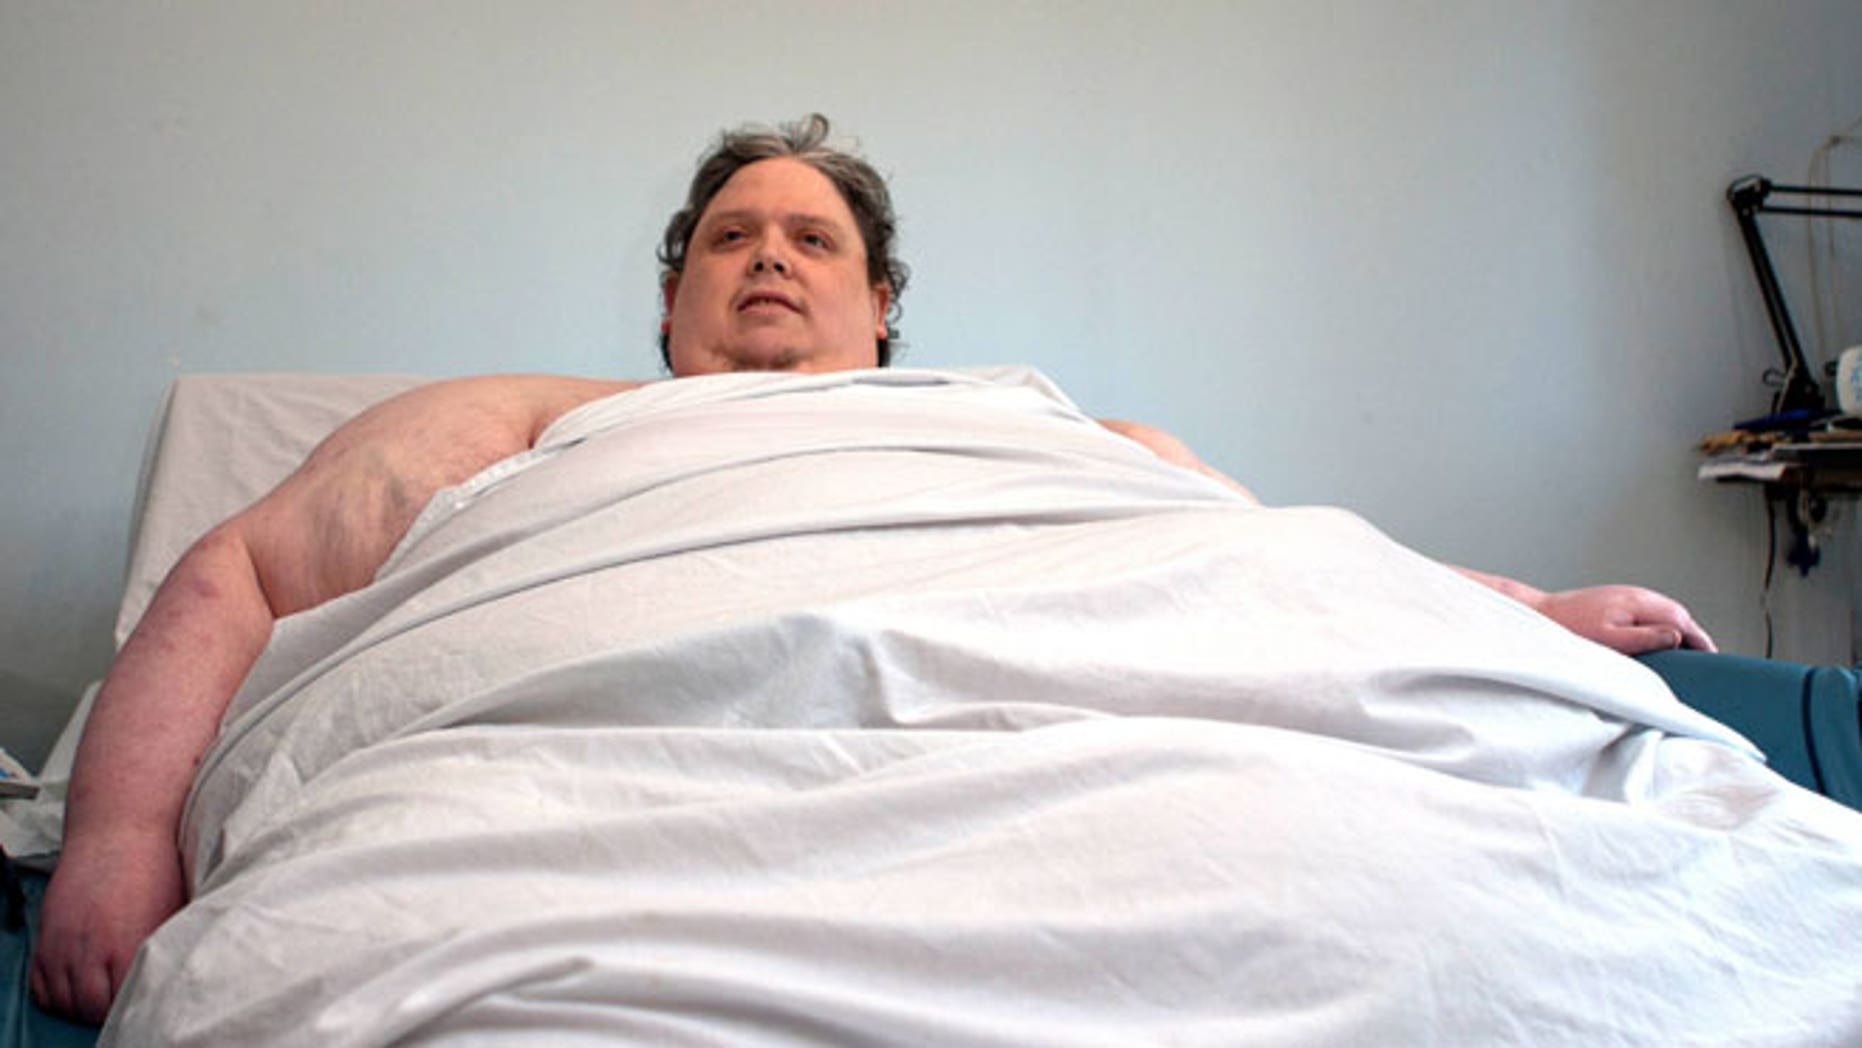 Fattest man in the world dies at age 44 | Fox News